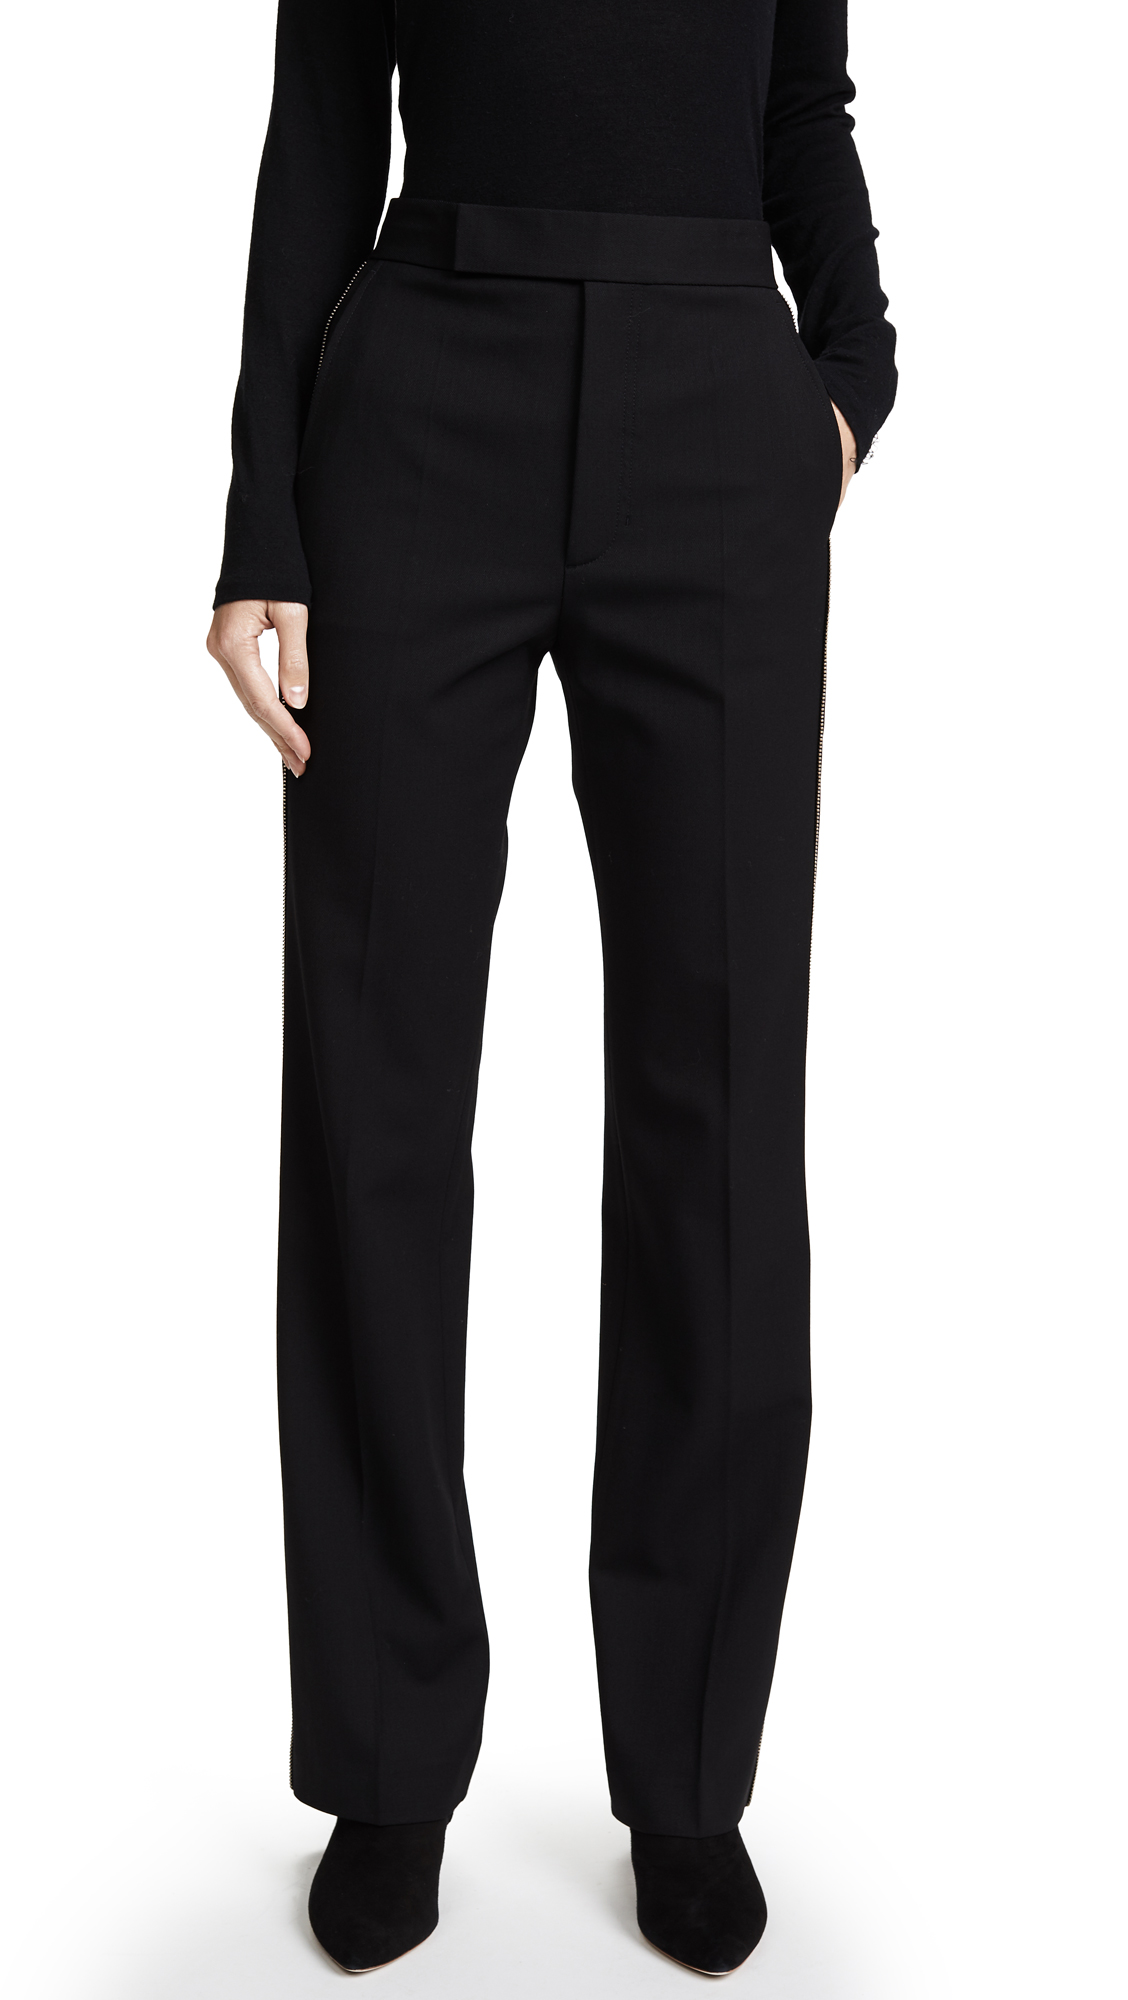 Helmut Lang Textured Suiting Pants with Zipper Detail - Black